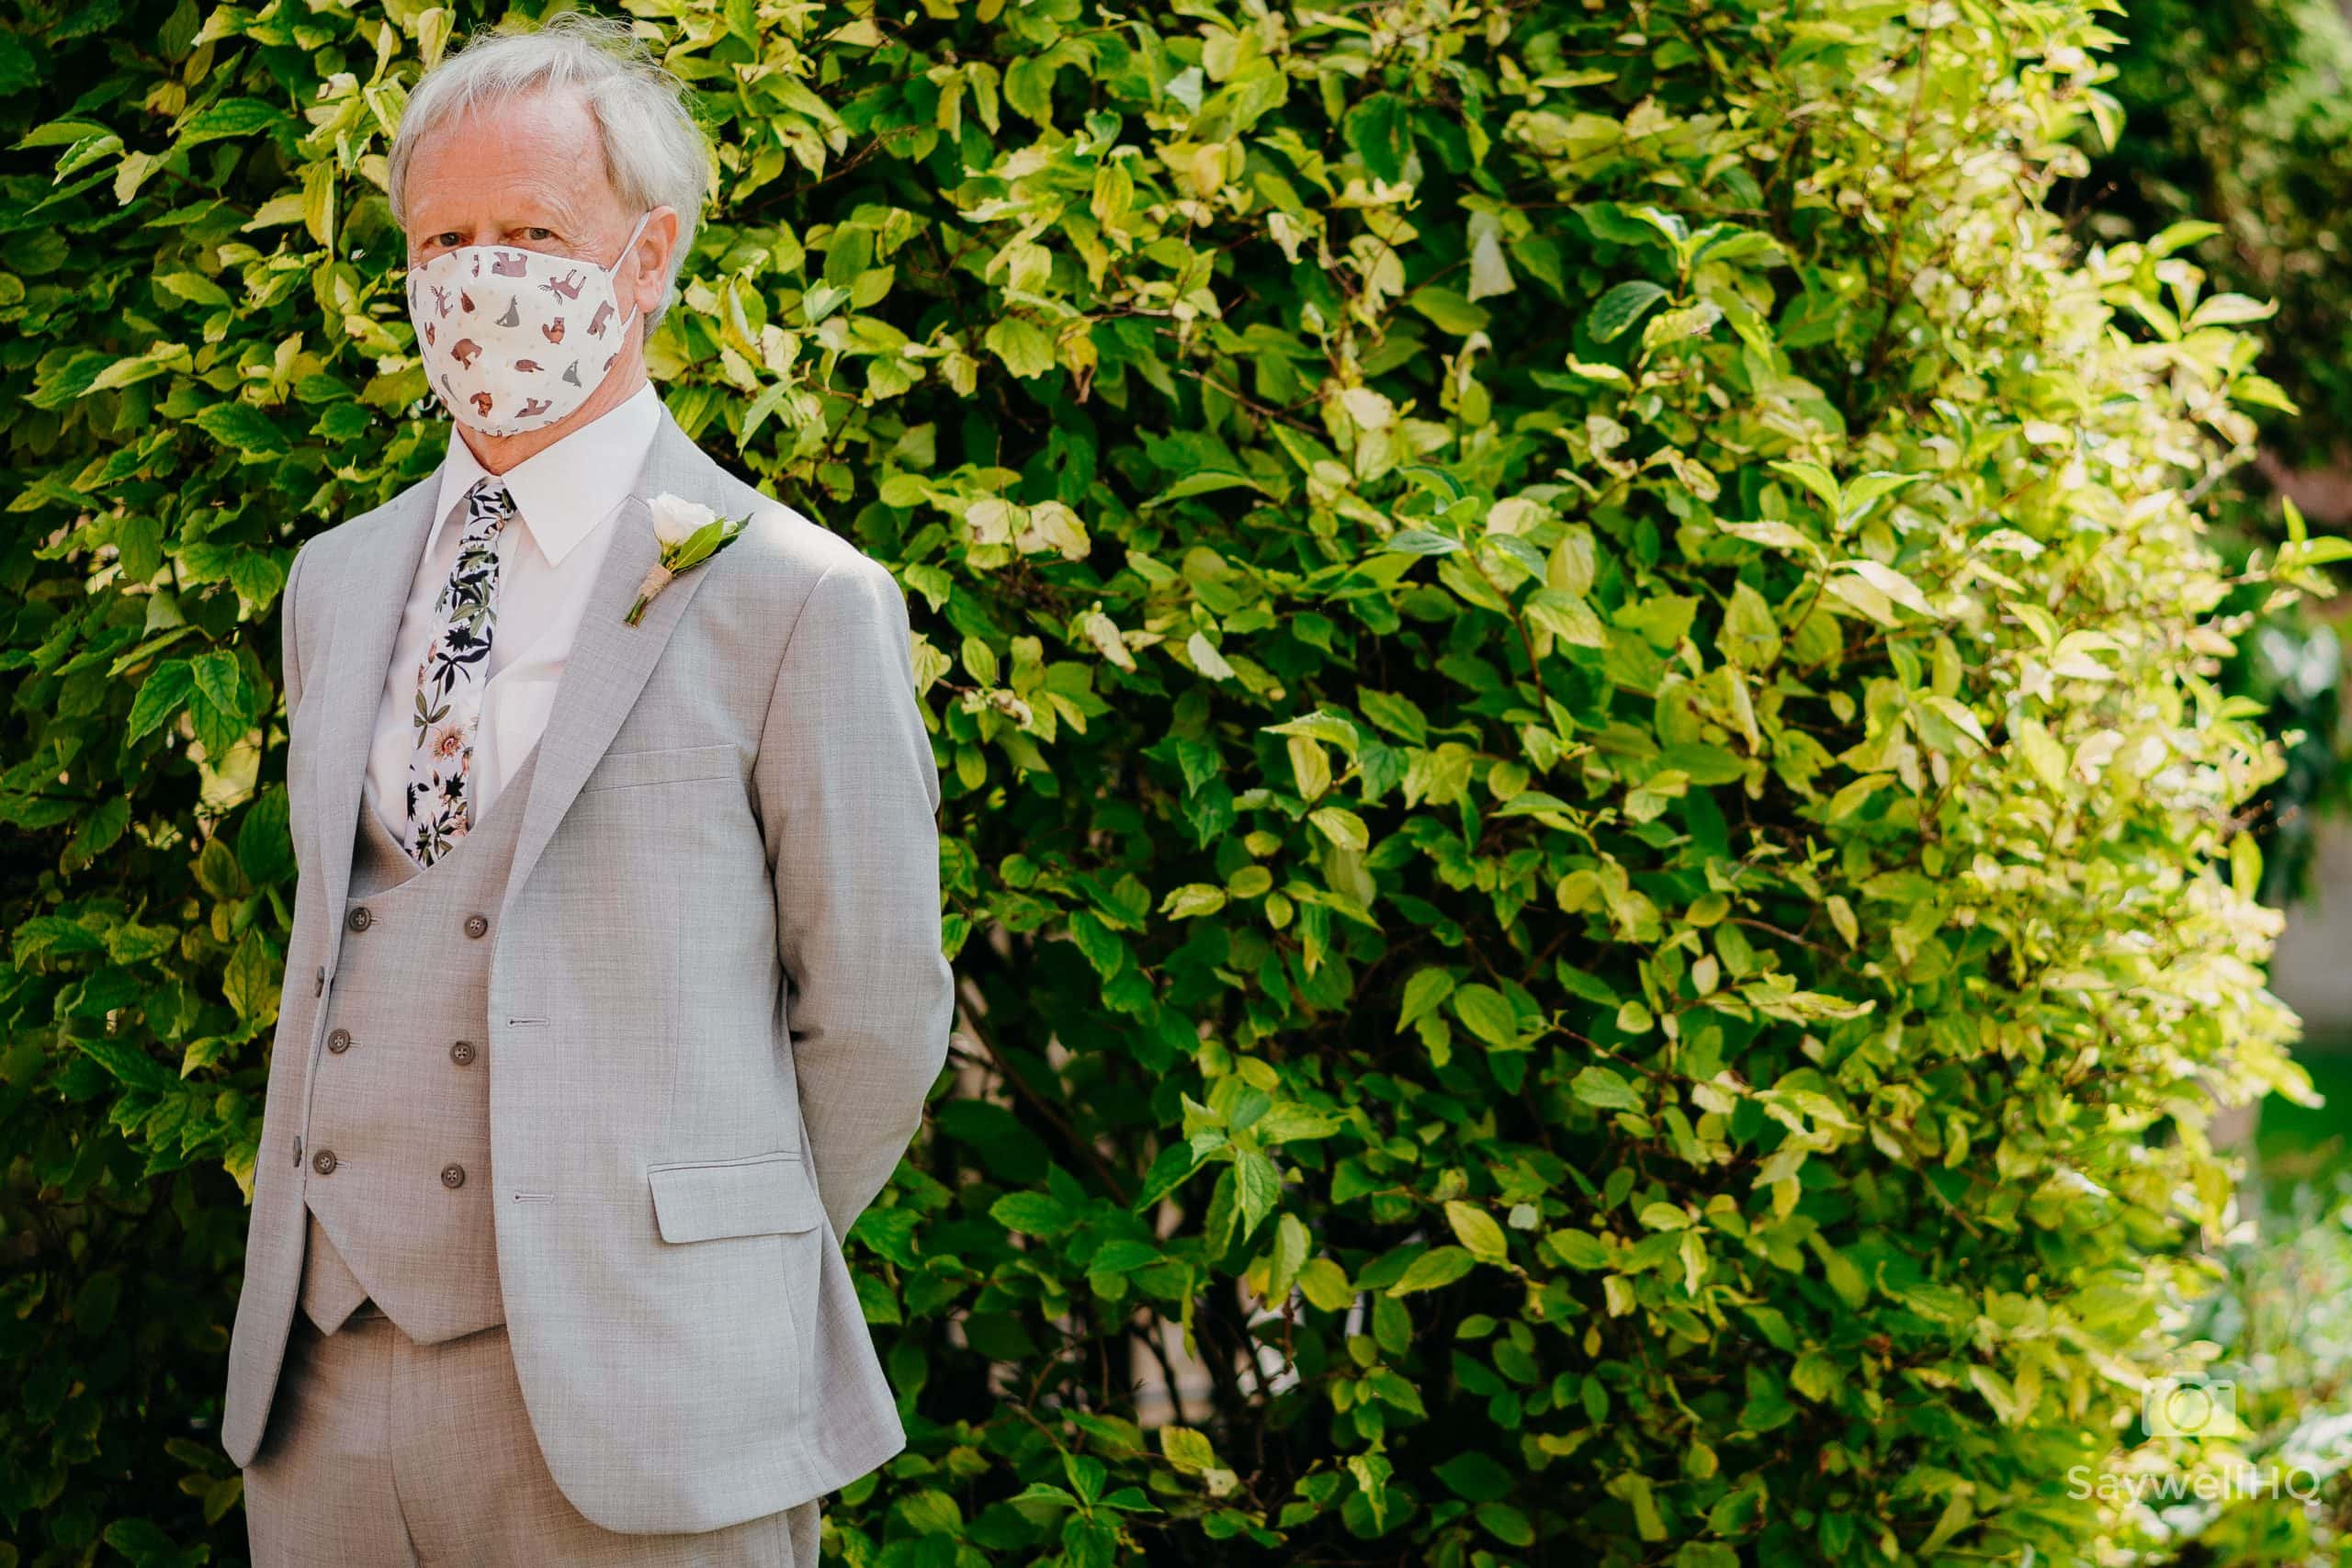 wedding guest waits outside the church wearing a mask because of the COVID restrictions in a Church